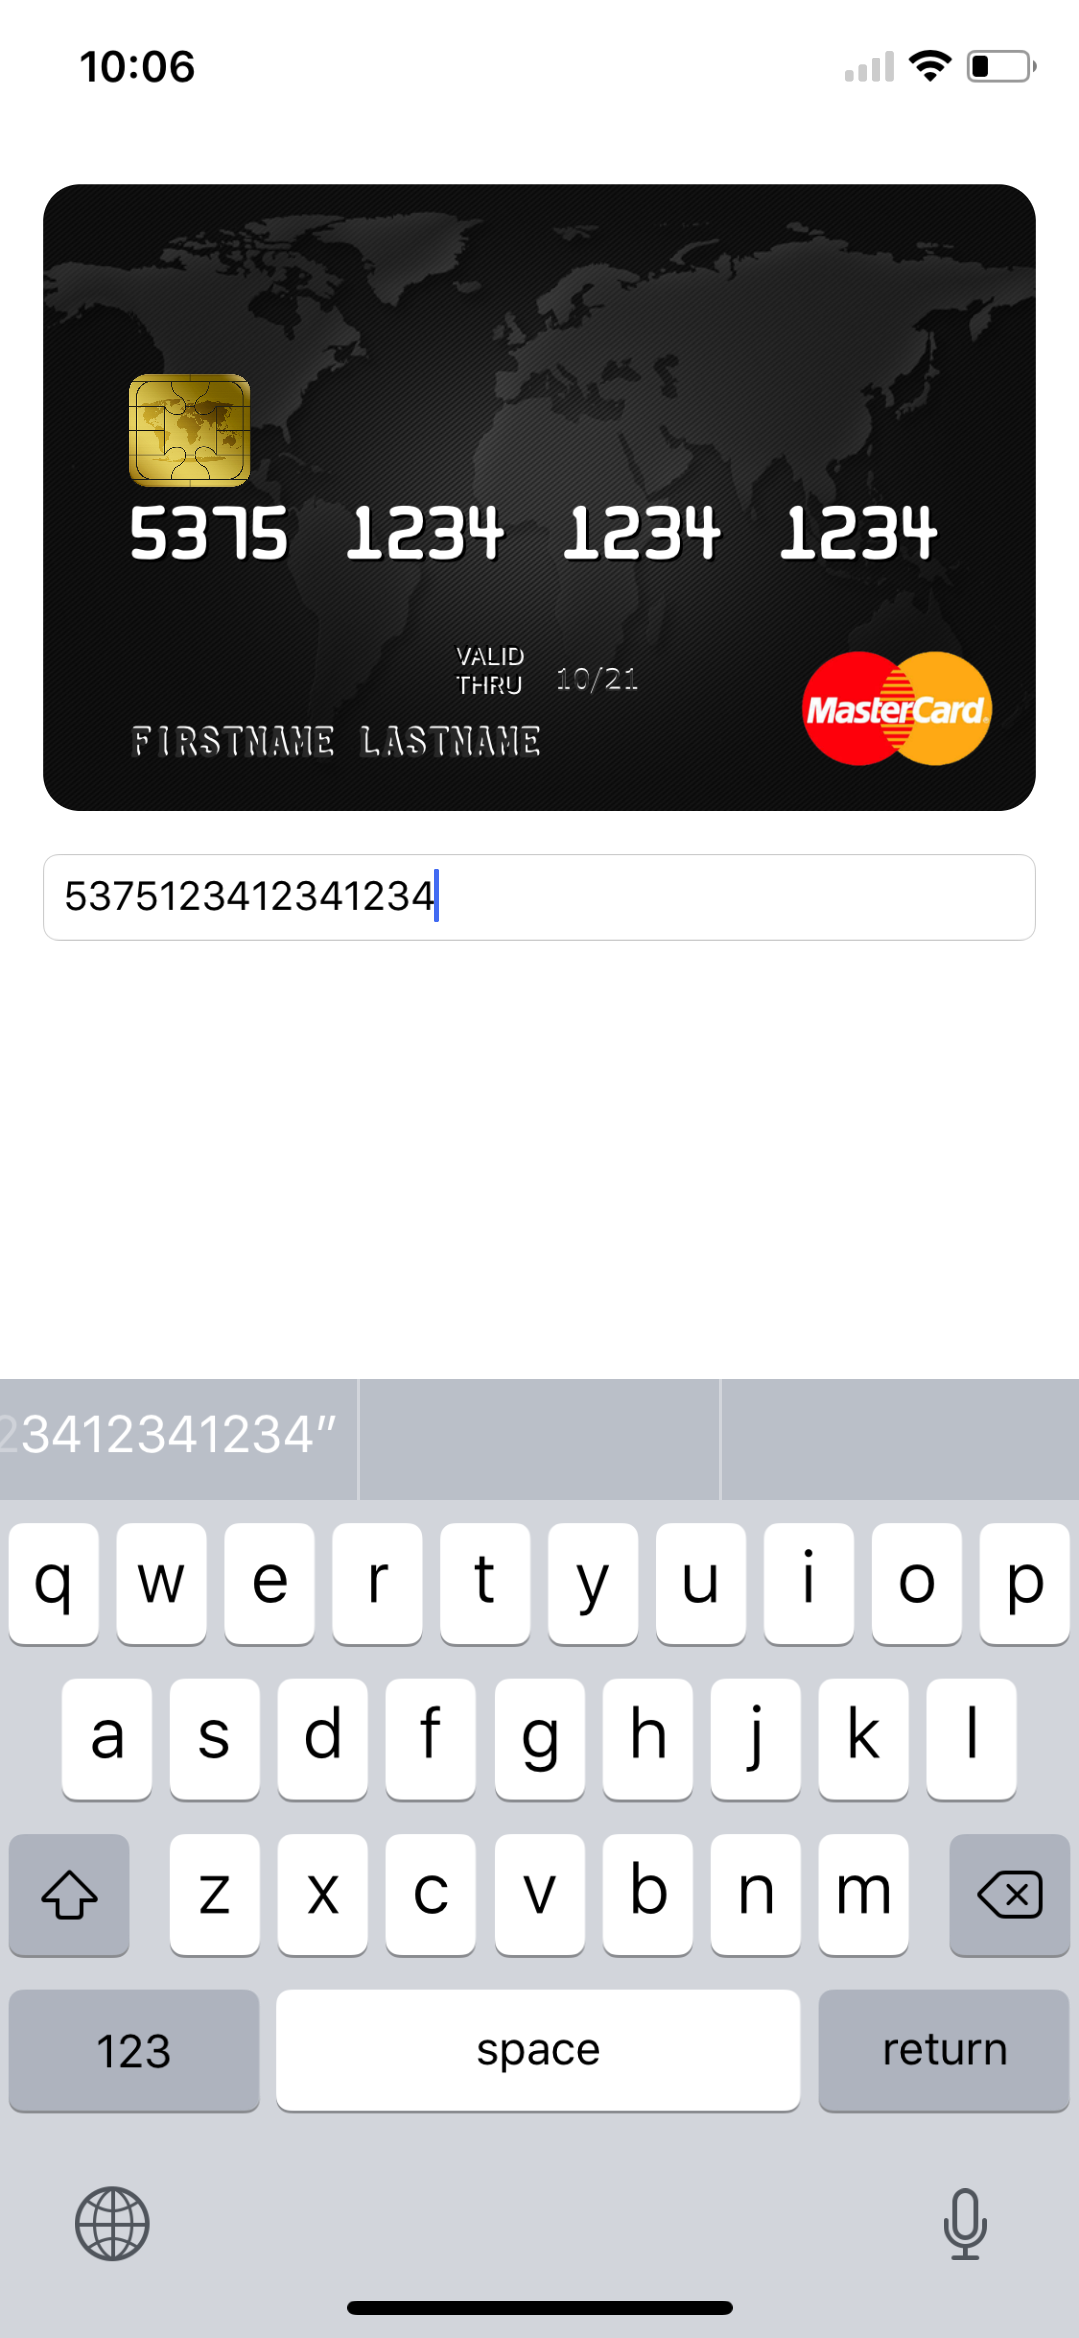 Simulator screen shot   iphone x   2018 01 27 at 22.06.11